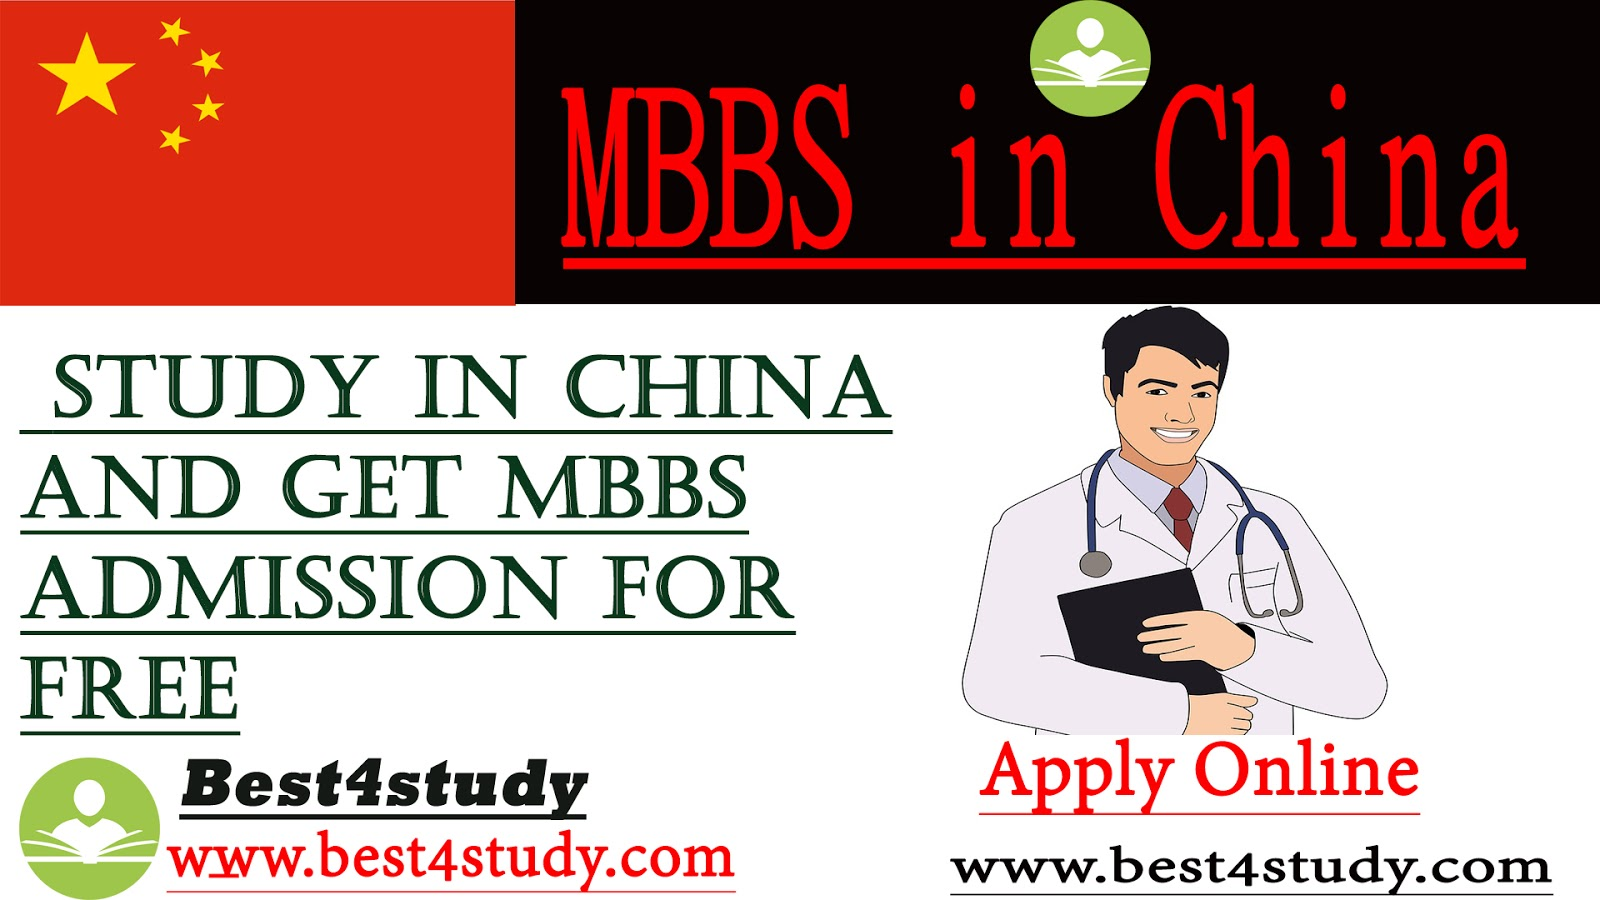 MBBS Admission in China 2019 Online Apply - Best4study